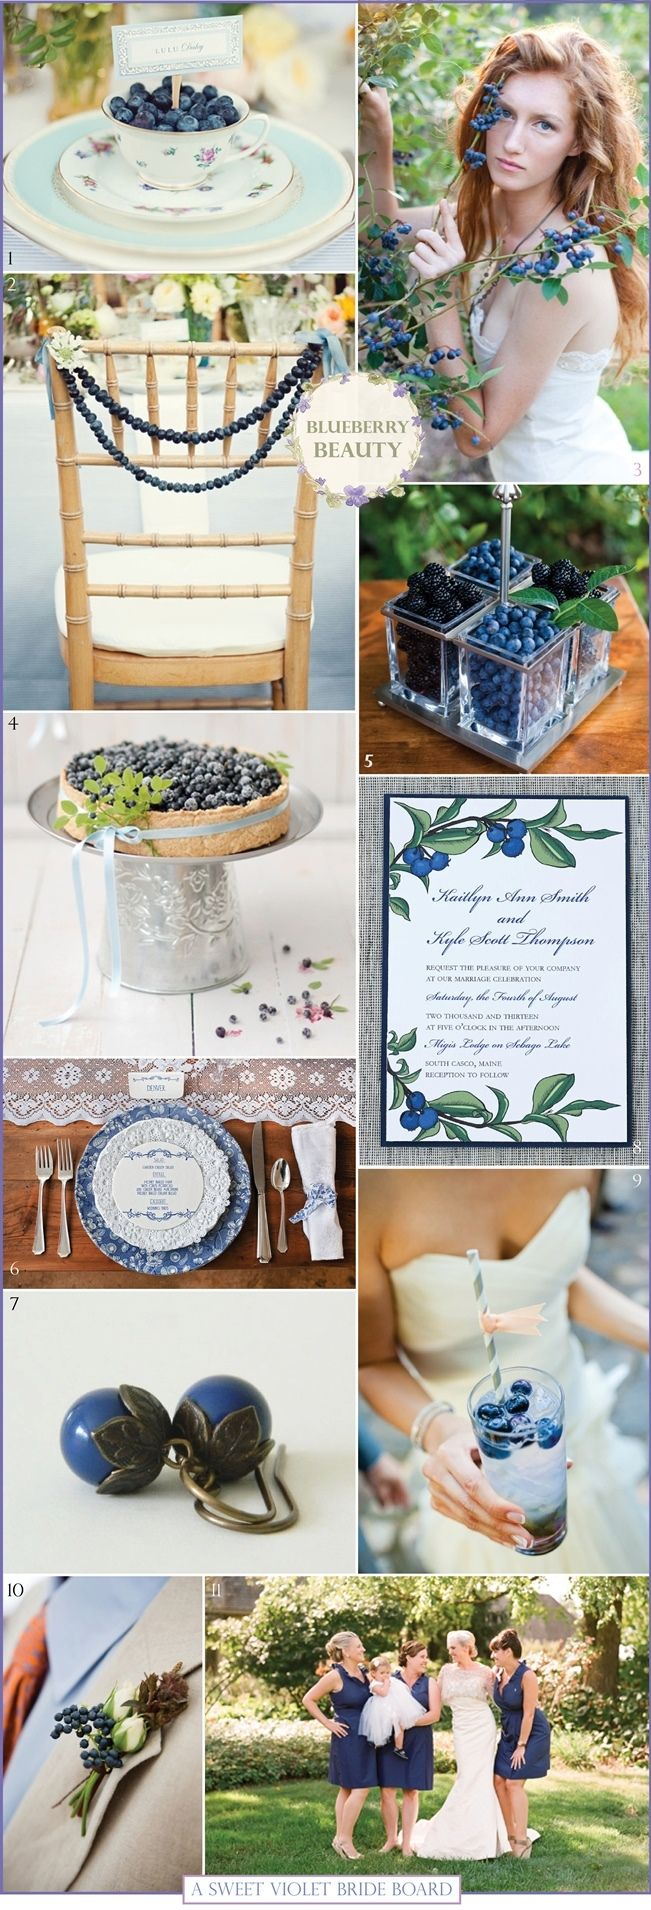 Sweet Violet Bride - Blueberry Beauty  http://sweetvioletbride.com/2013/06/wedding-inspiration-board-8-blueberry-beauty/